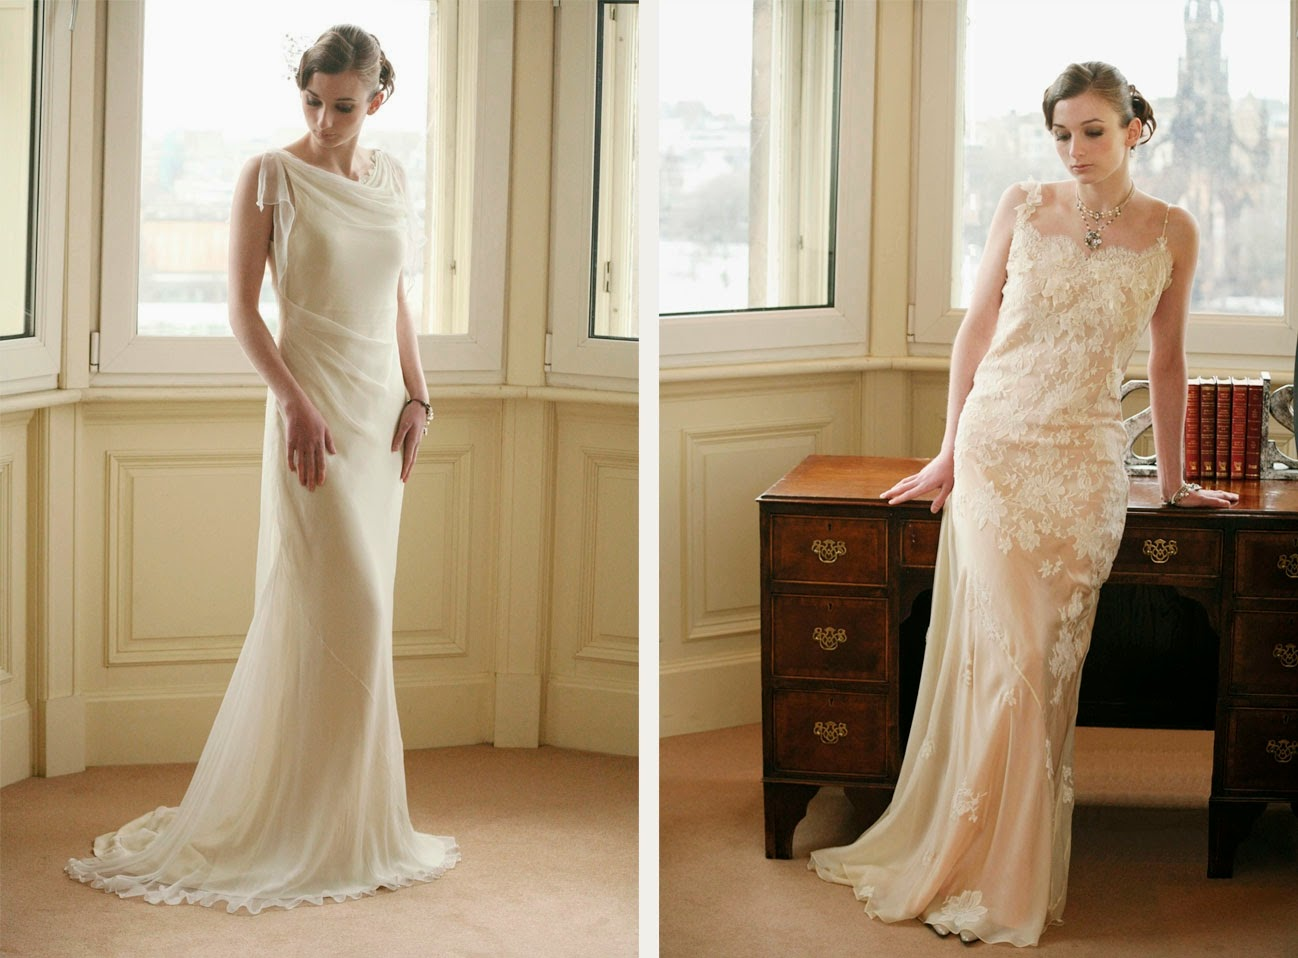 archive country rustic wedding dresses Summer Wedding Dresses for outdoor party